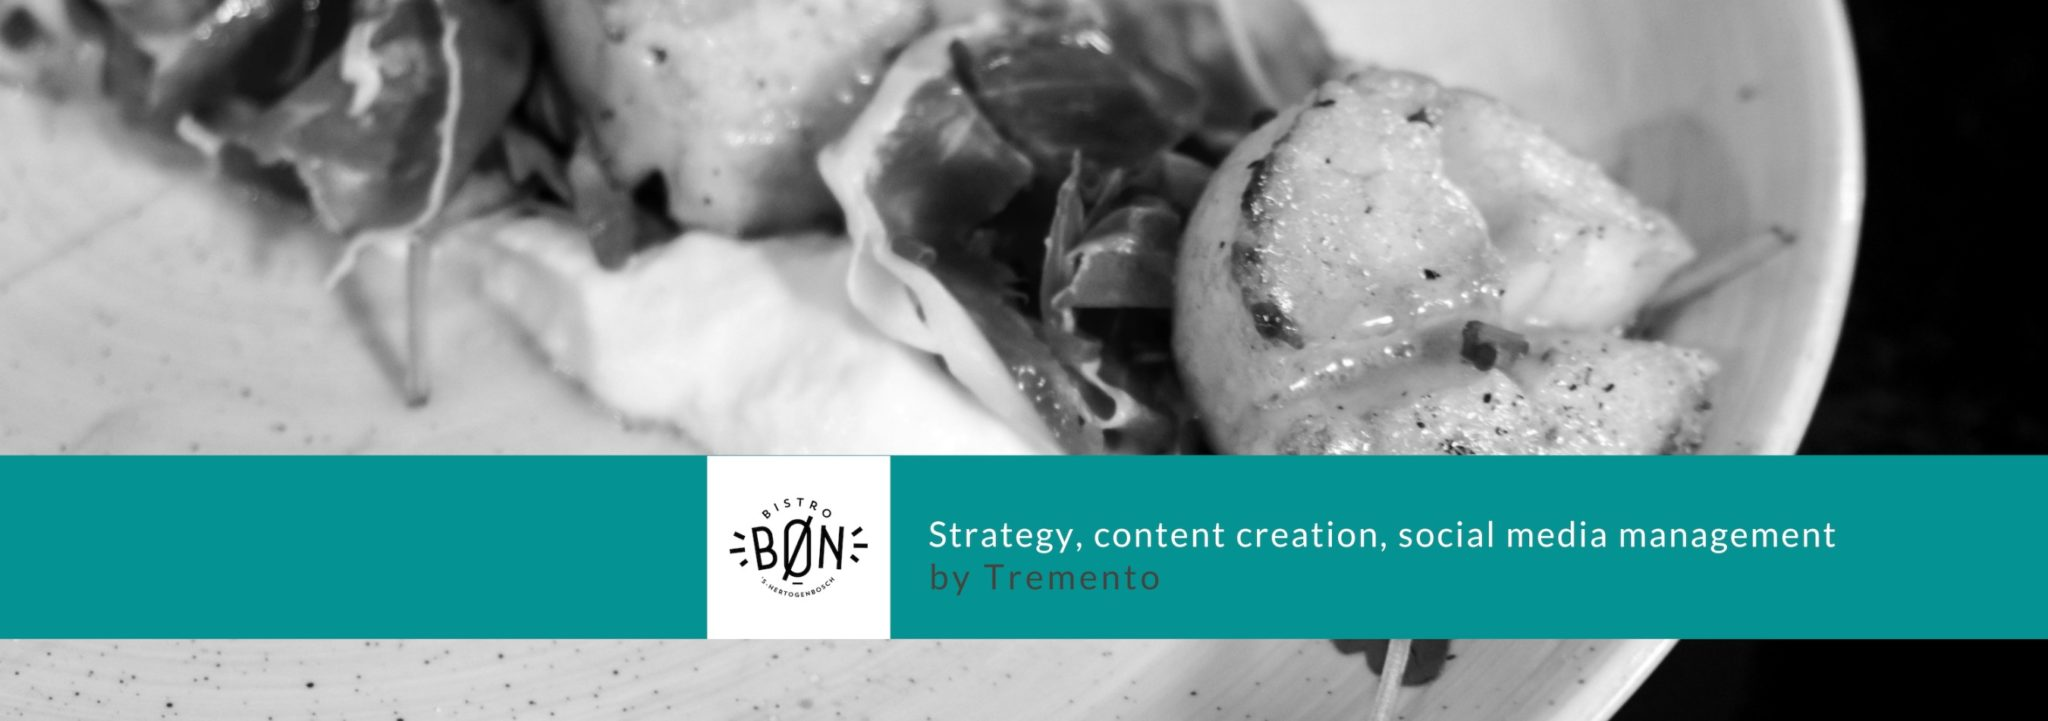 Bistro Bon - Social media management voor horeca - Tremento